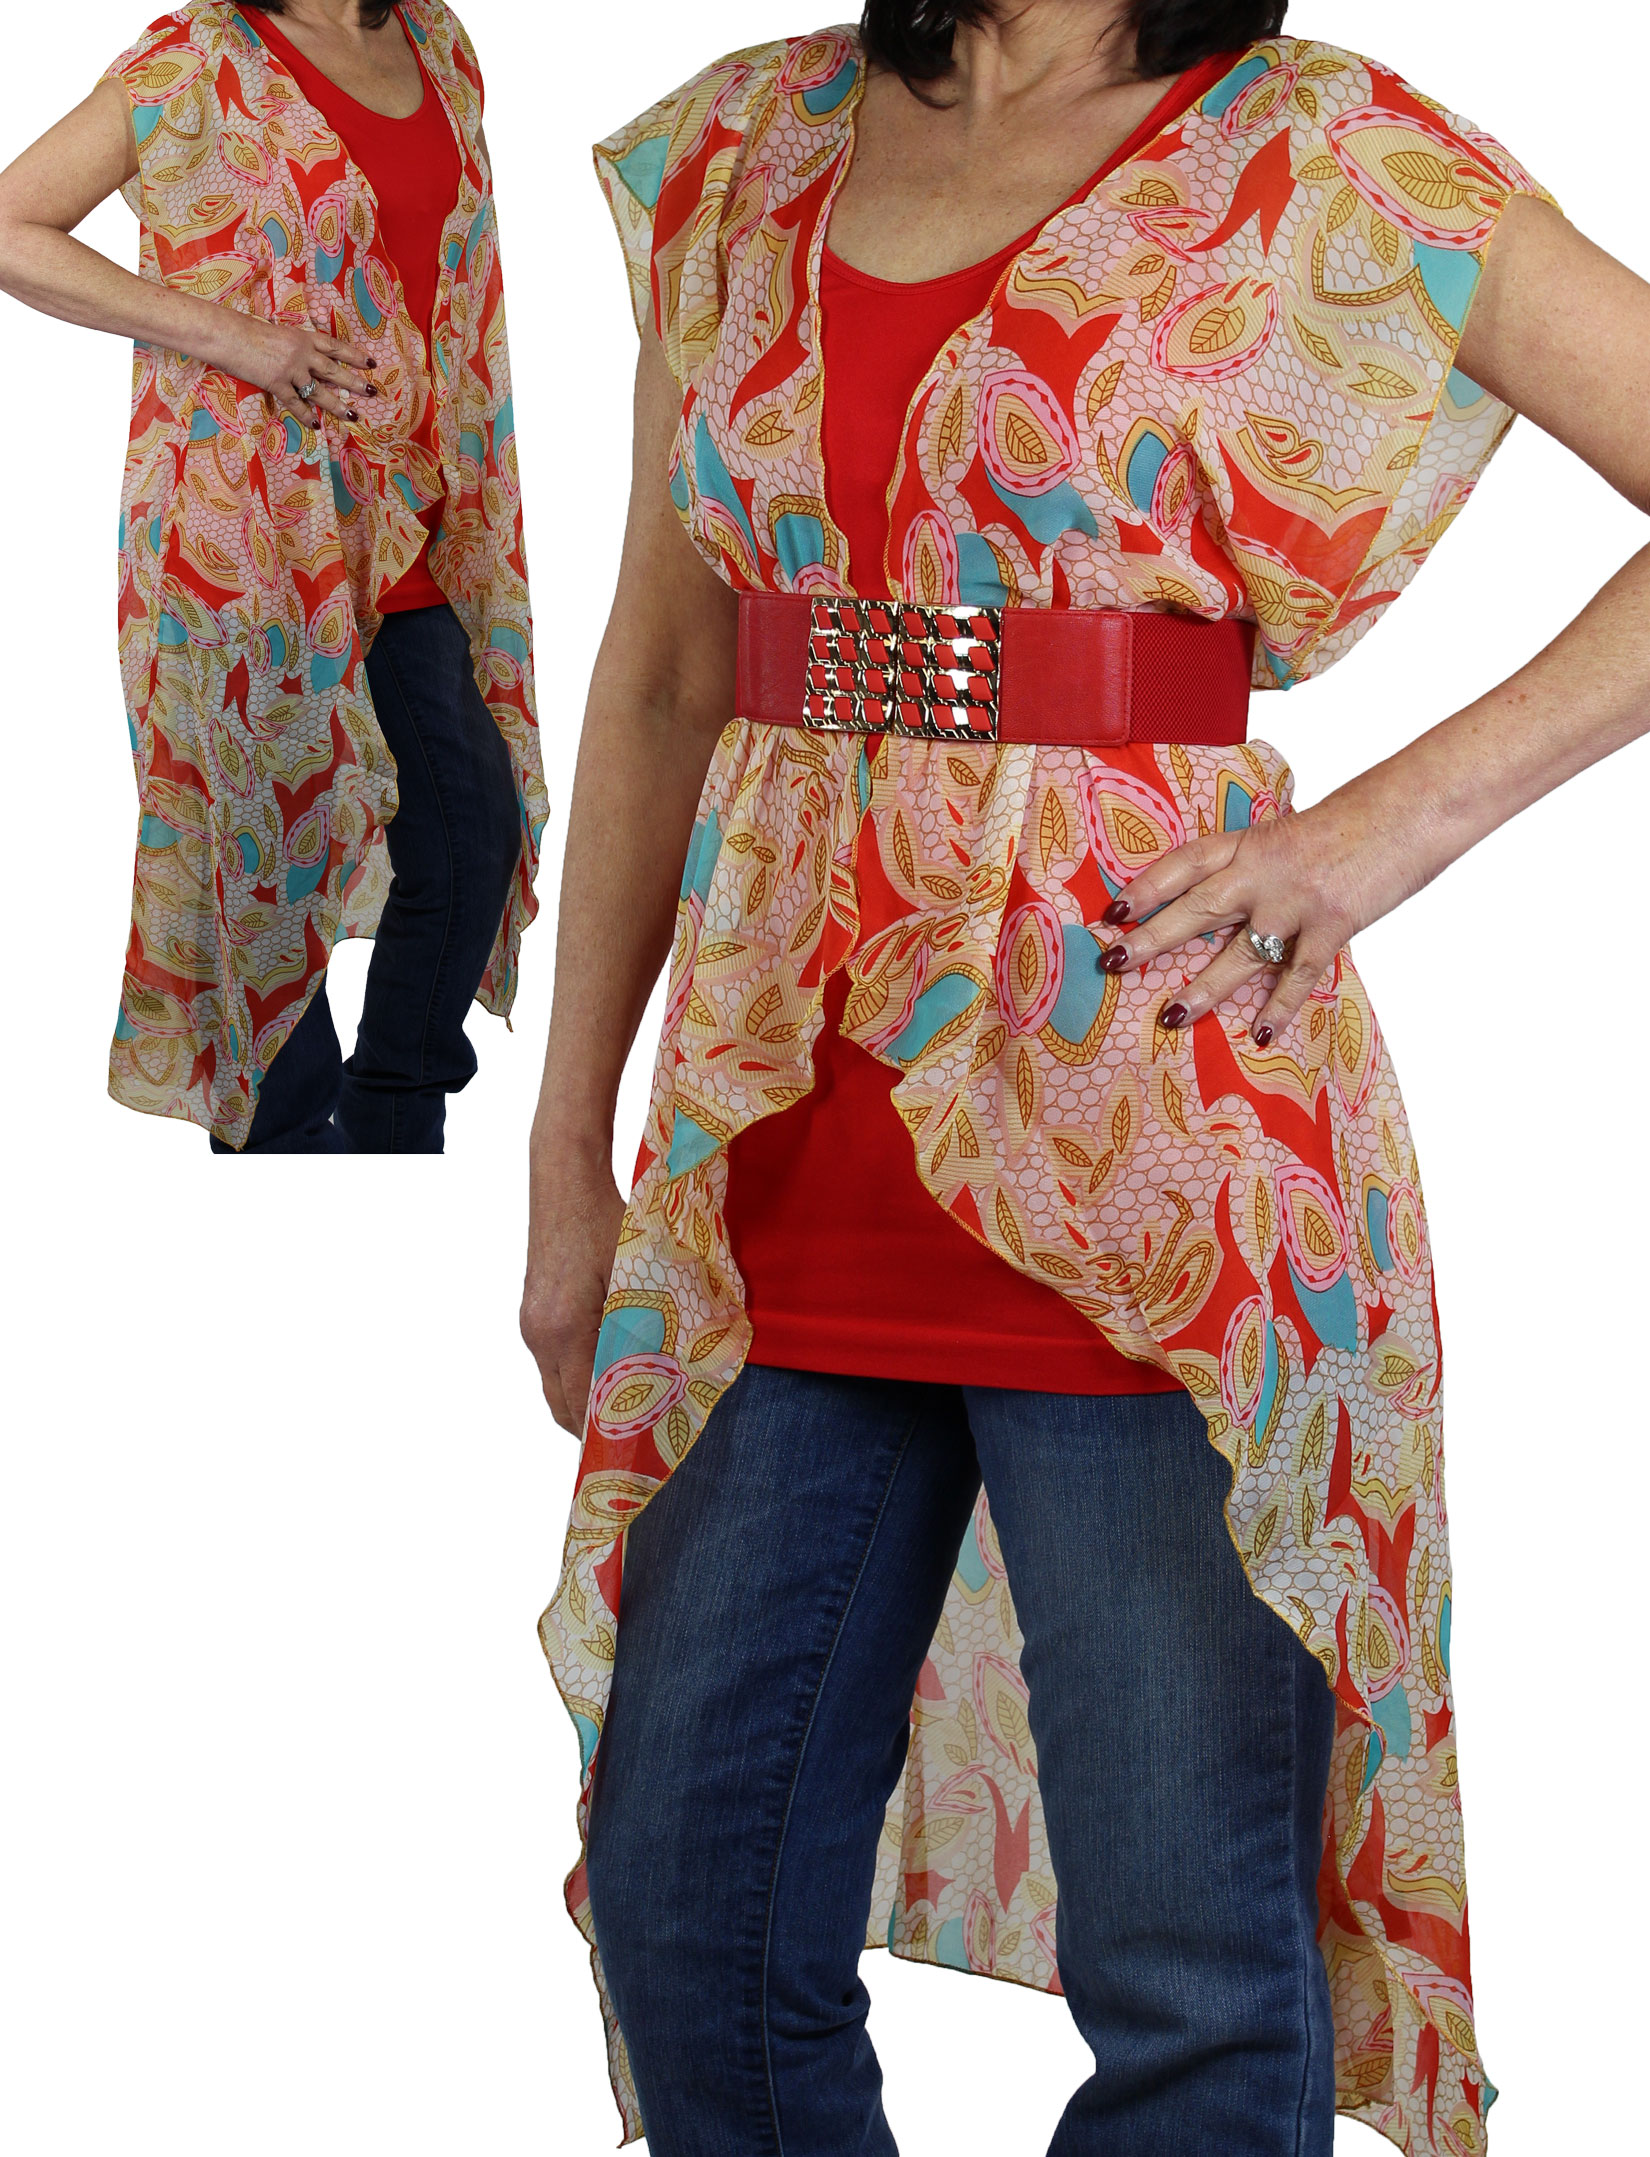 Vests - Chiffon Duster 1124, 1125, & 1127 - 1124 Red